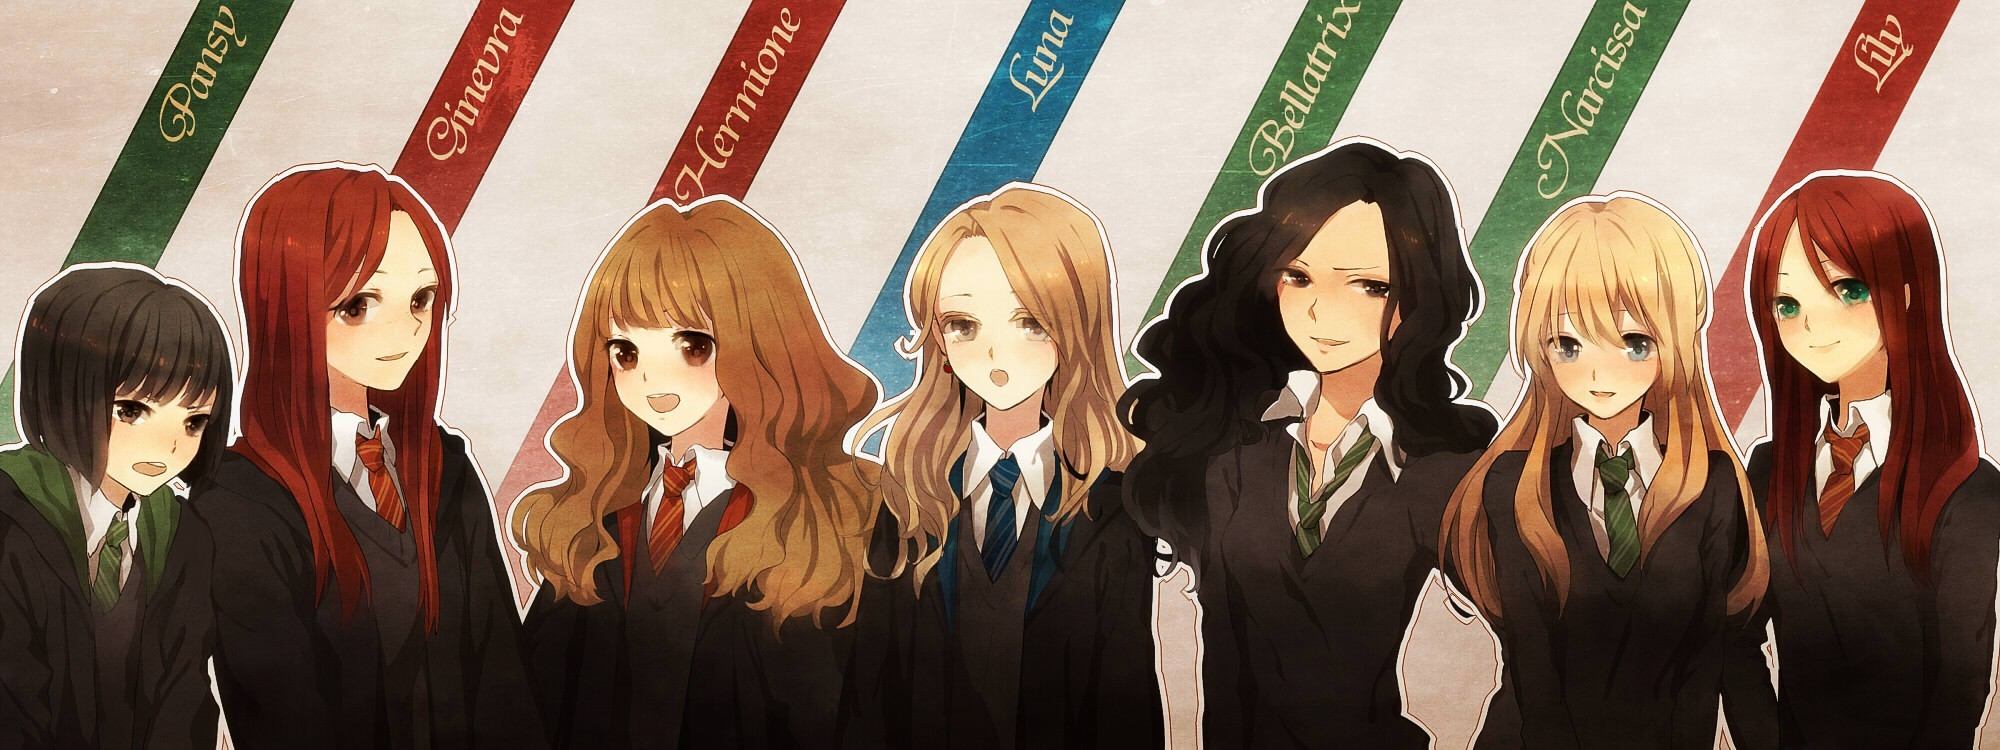 seifuku harry potter lily evans hermione granger